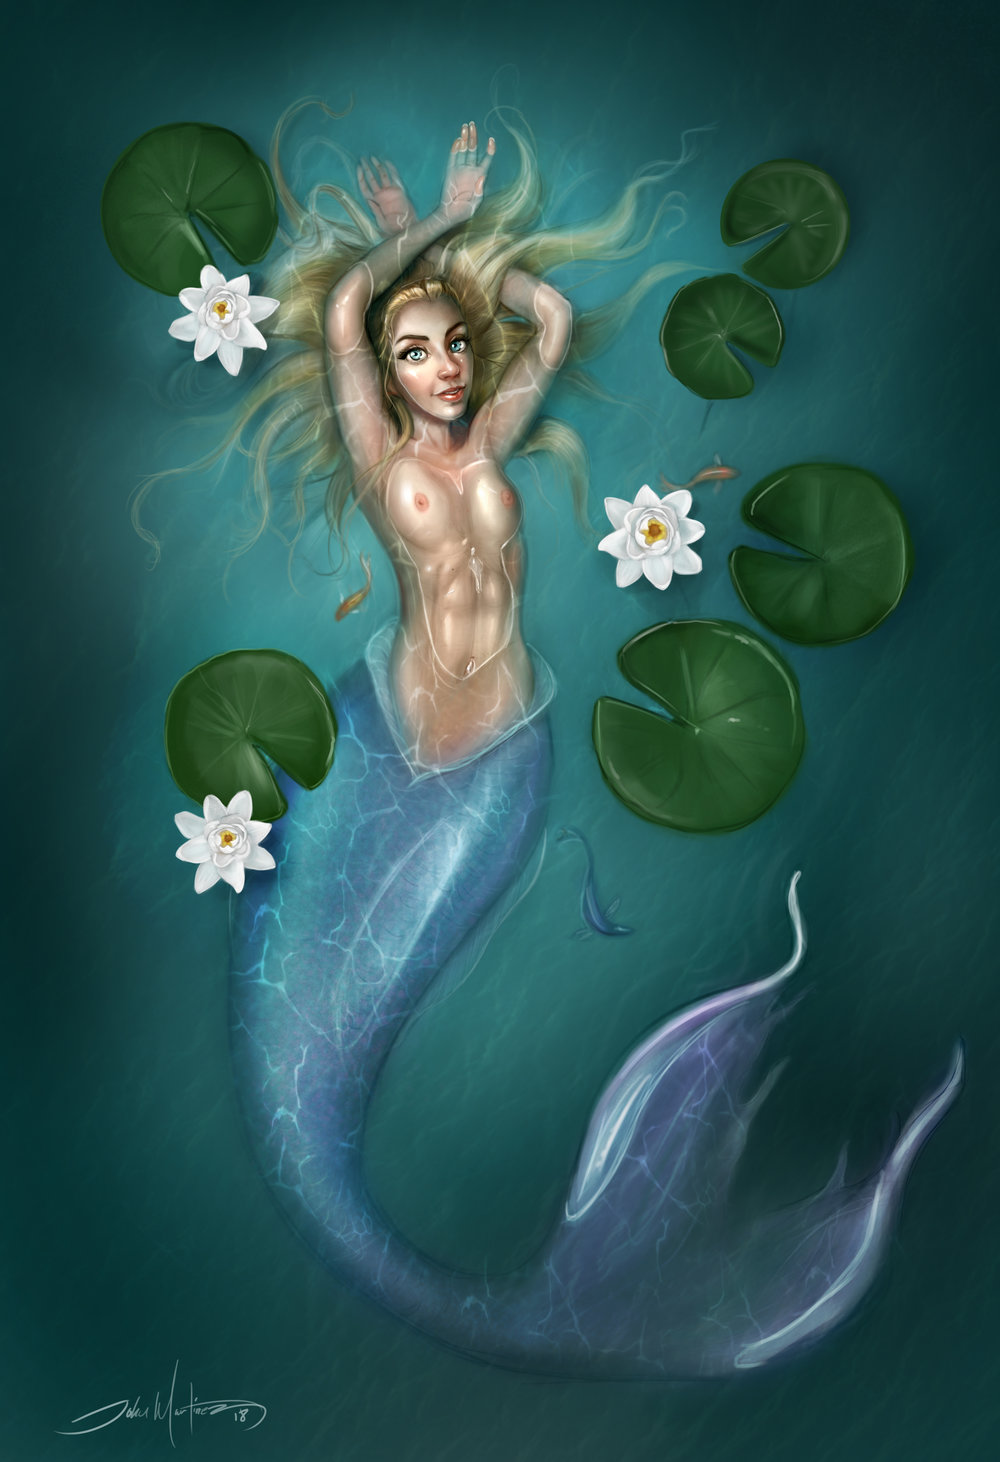 lily mermaid.jpg